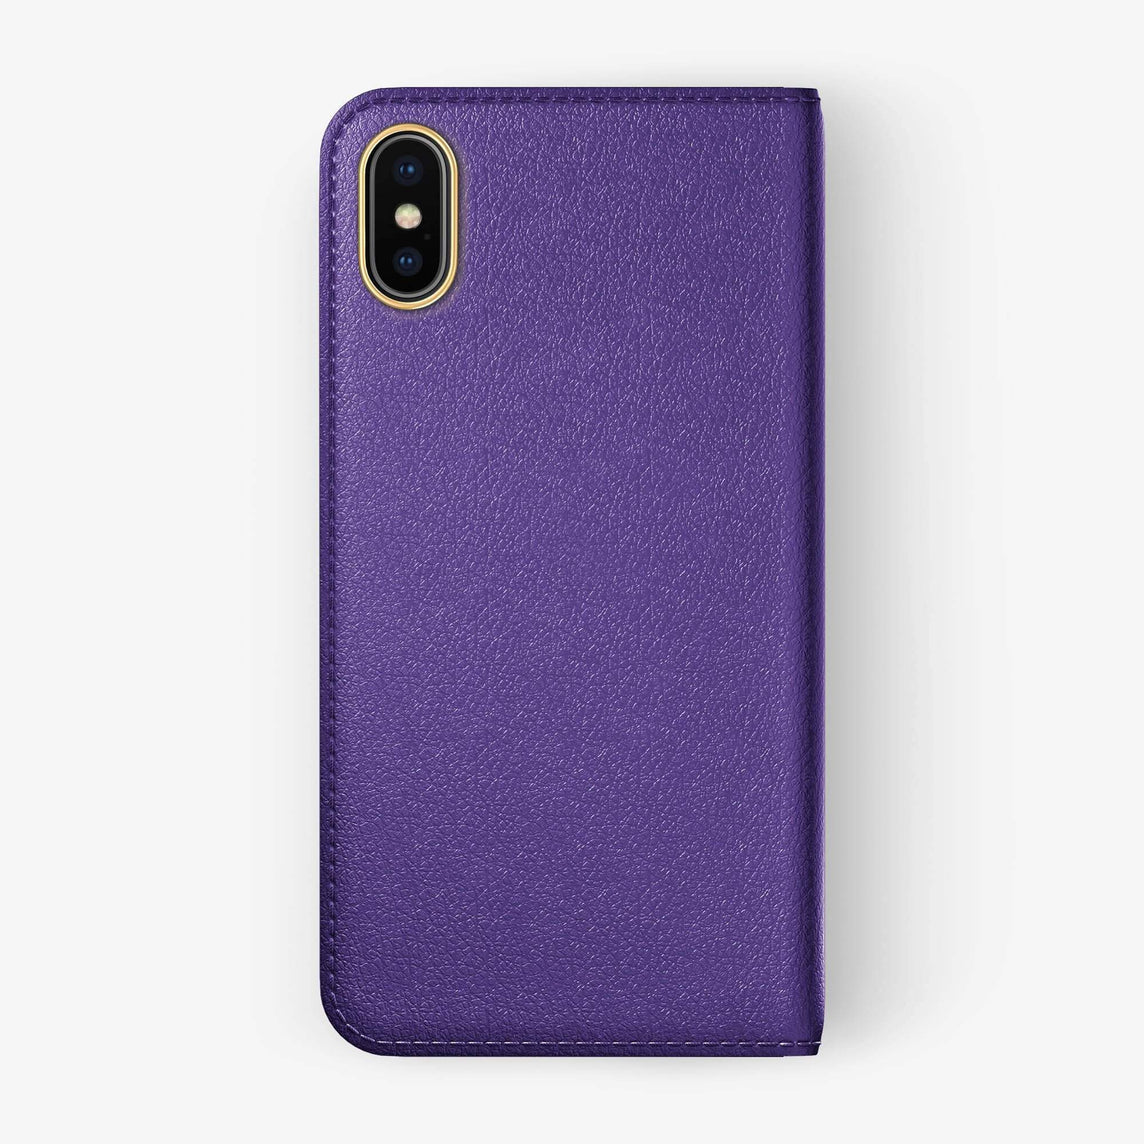 Violet Calfskin iPhone Folio Case for iPhone XS Max finishing yellow gold - Hadoro Luxury Cases - img5